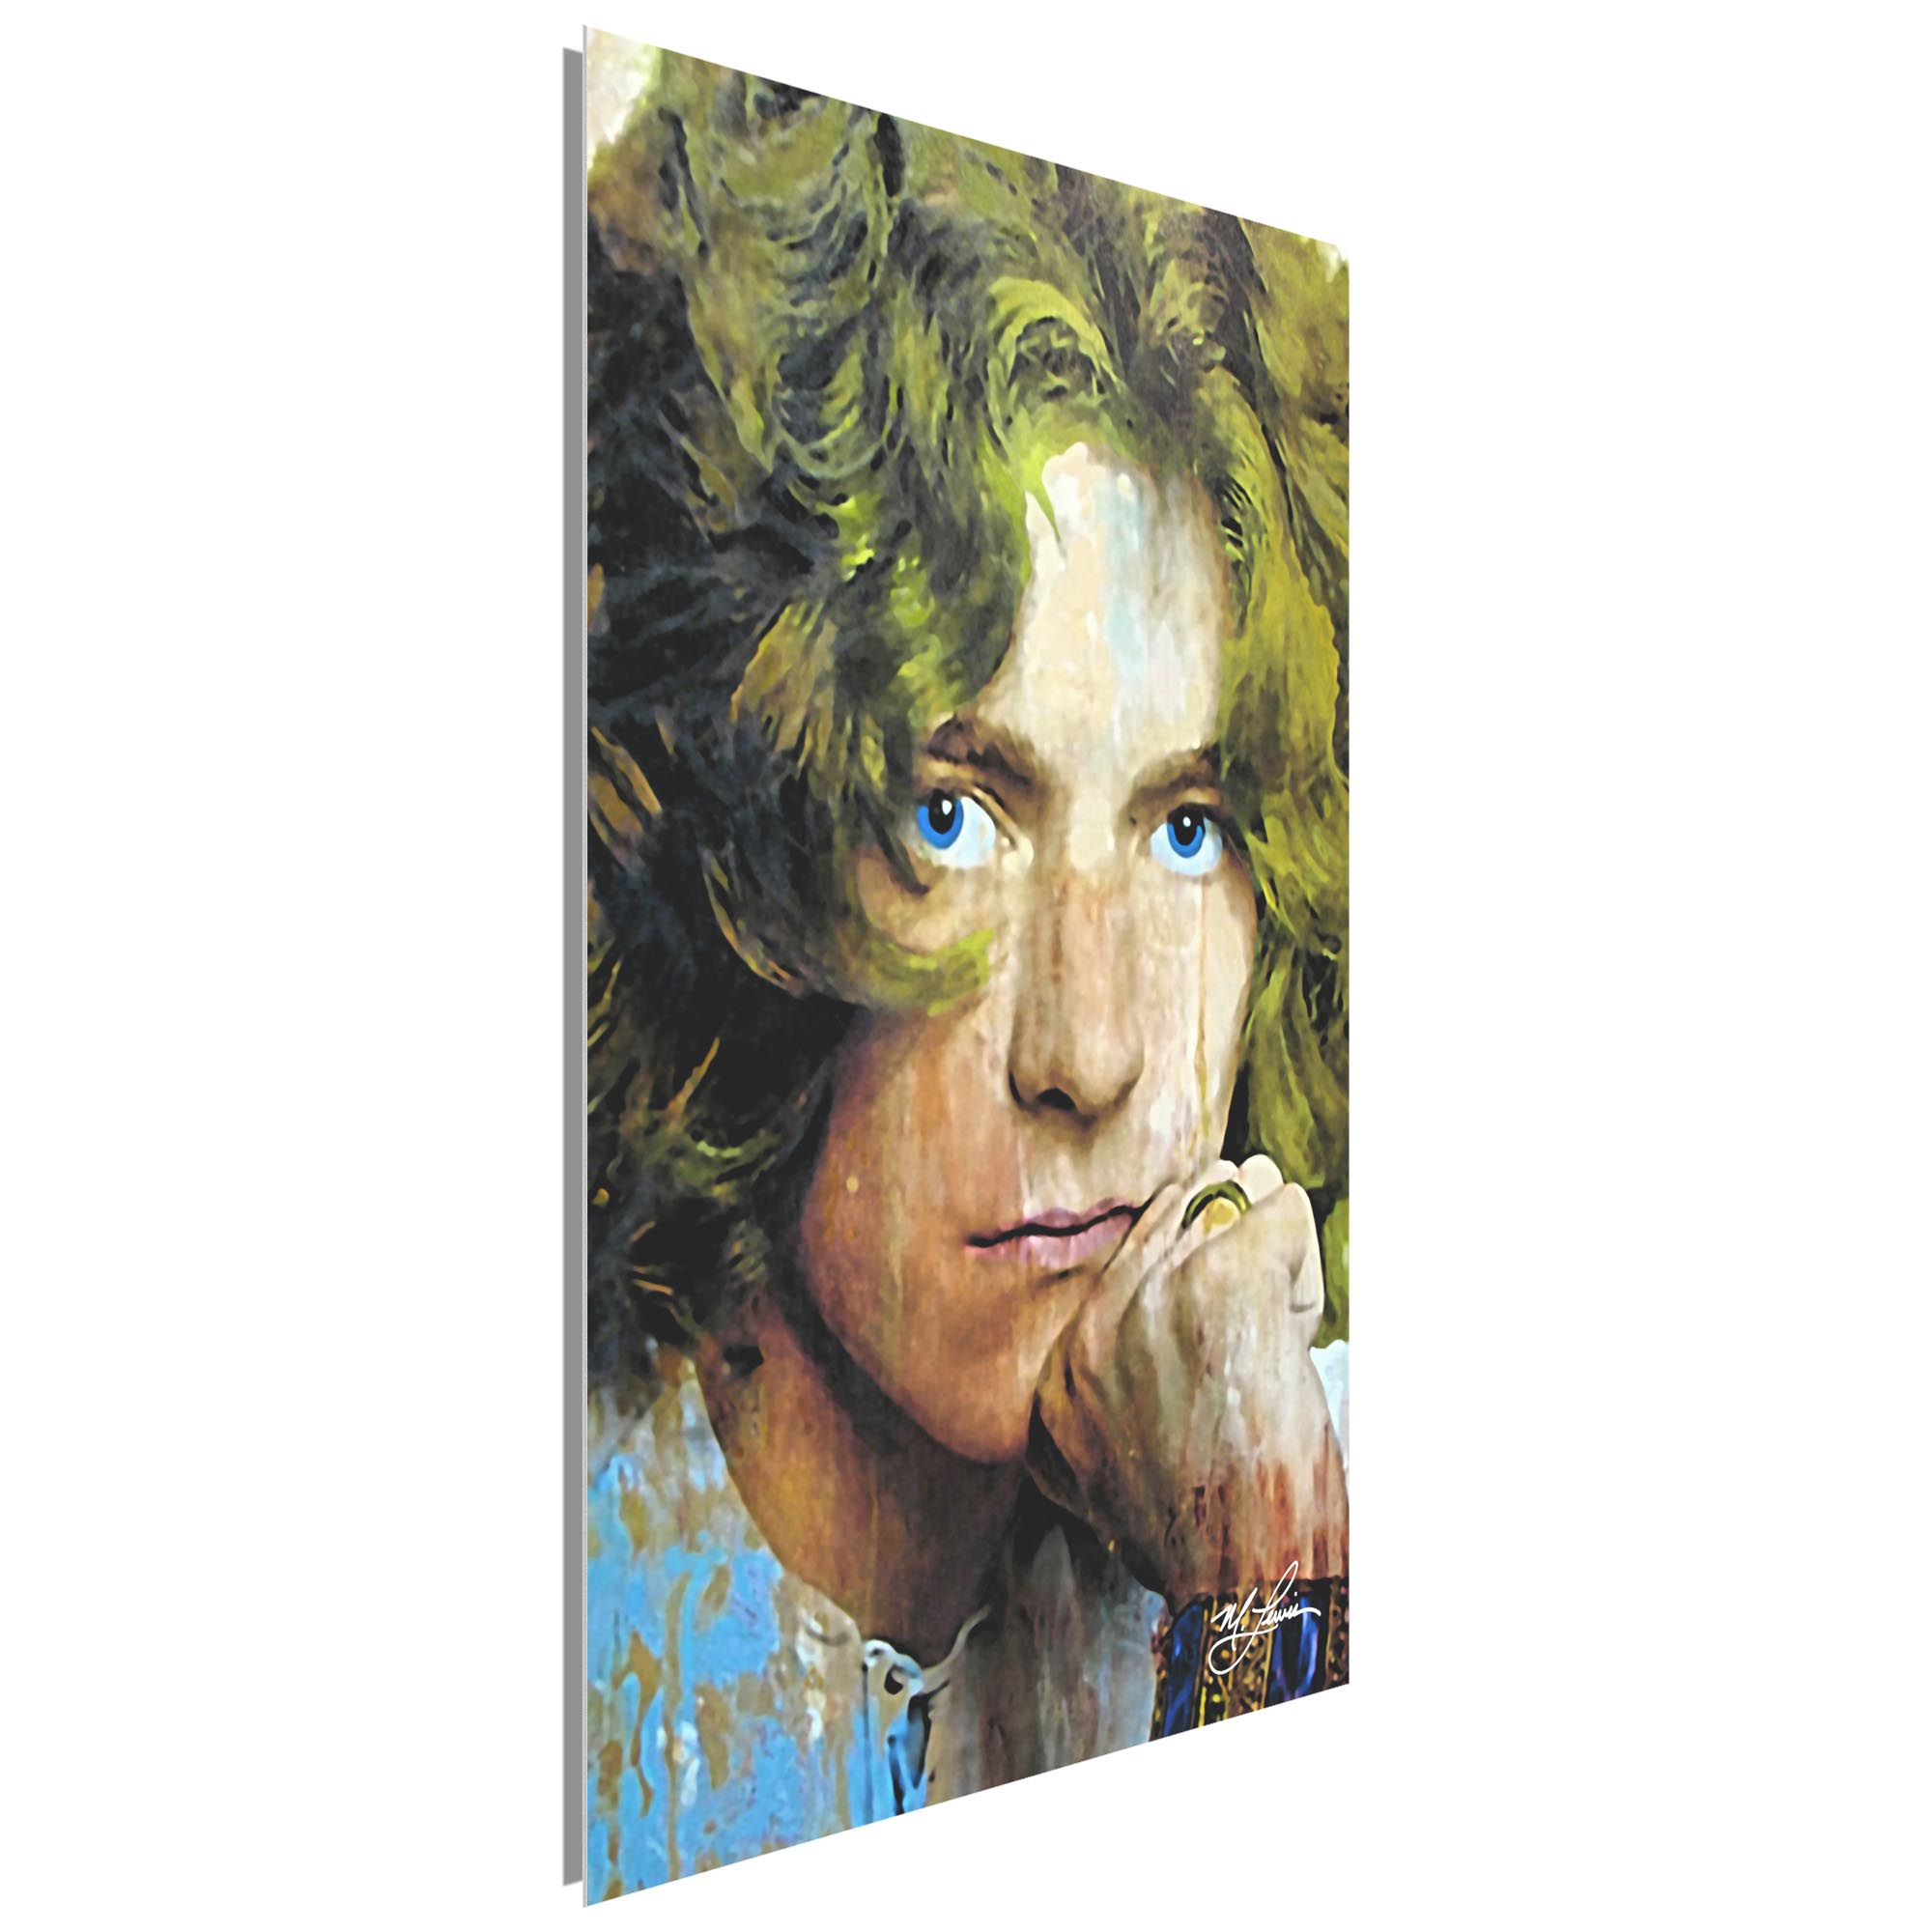 Robert Plant Shear Power 22x32 Metal or Plexiglass Pop Art Portrait - Image 2